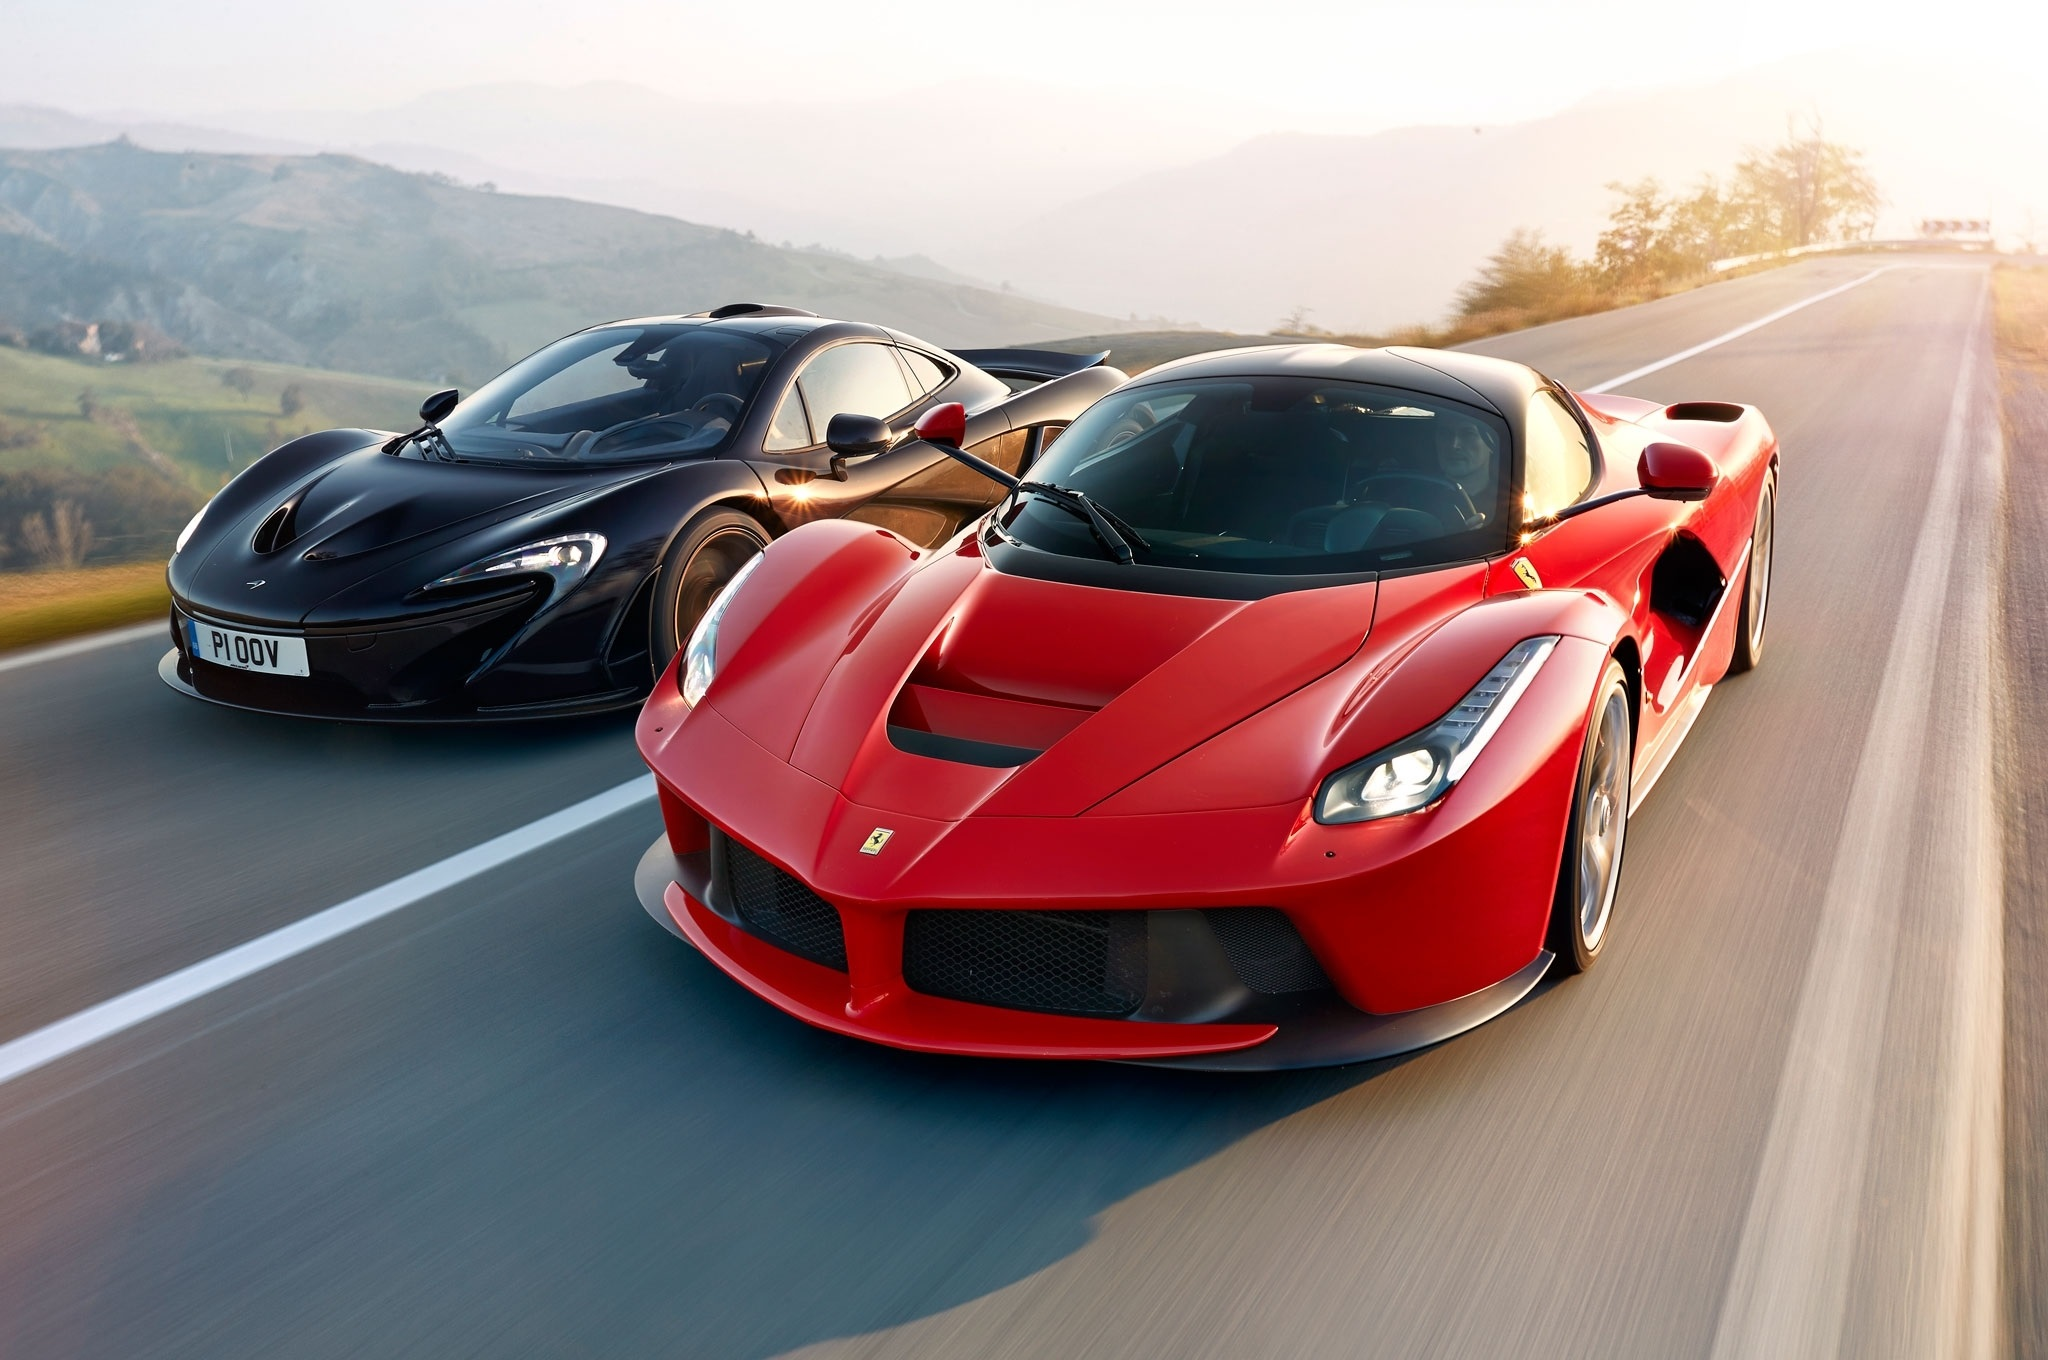 Range Rover Car Wallpaper Amazing Side By Side Ferrari Laferrari And Mclaren P1 High